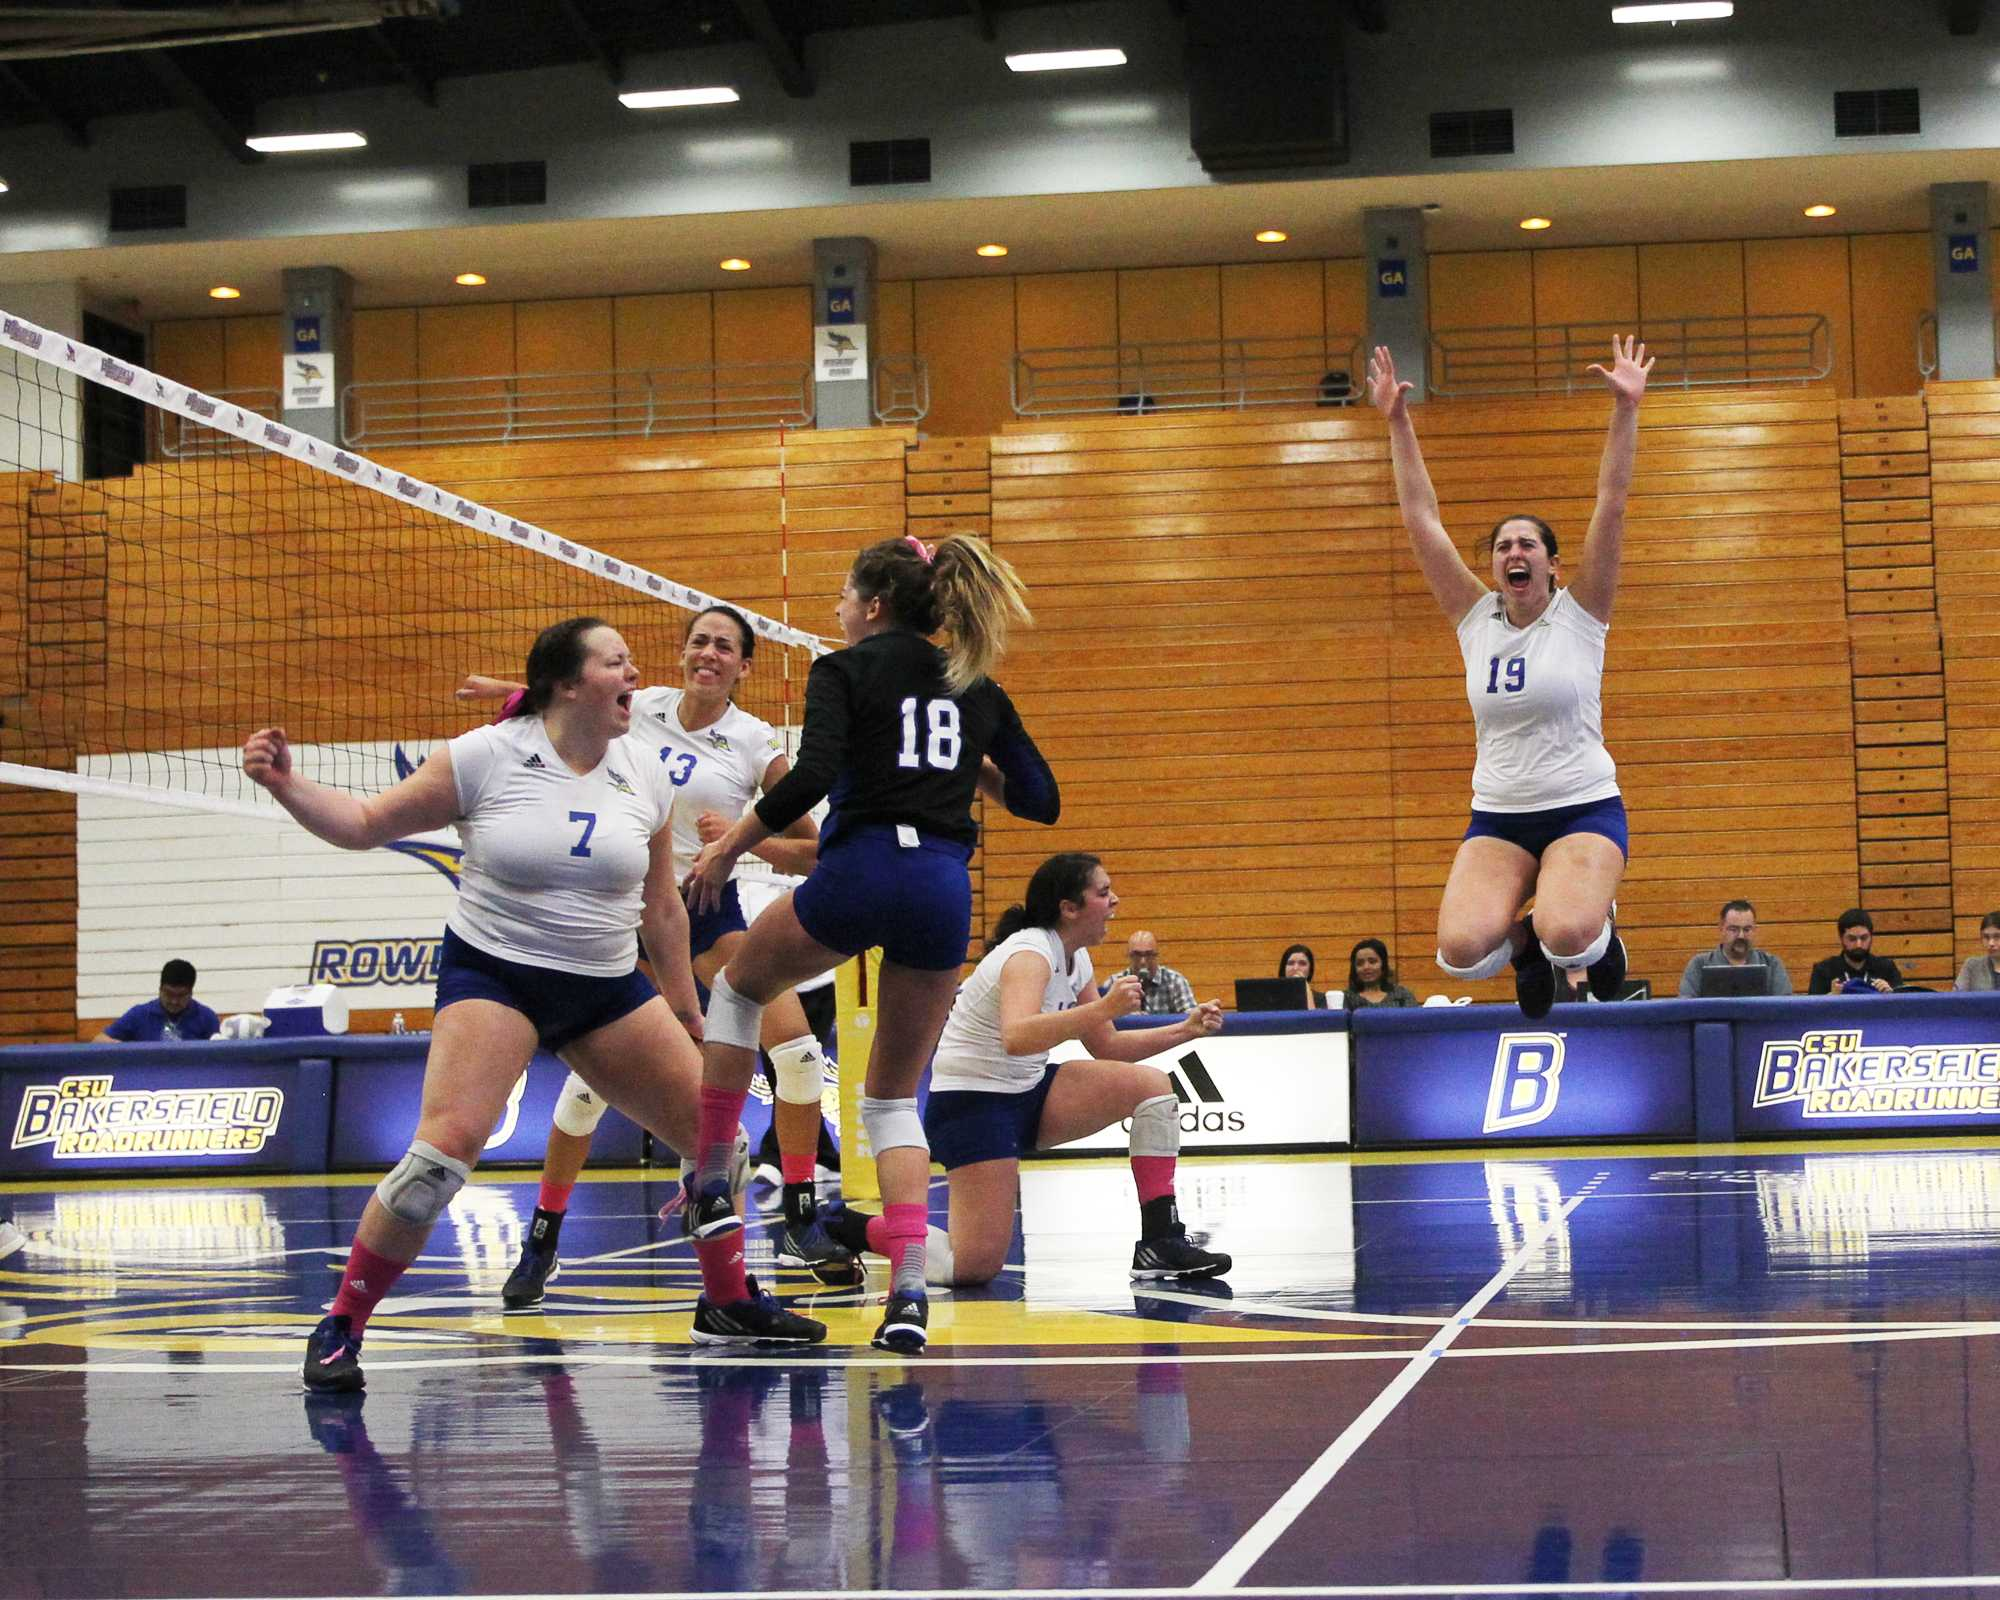 CSUB wins third match in row